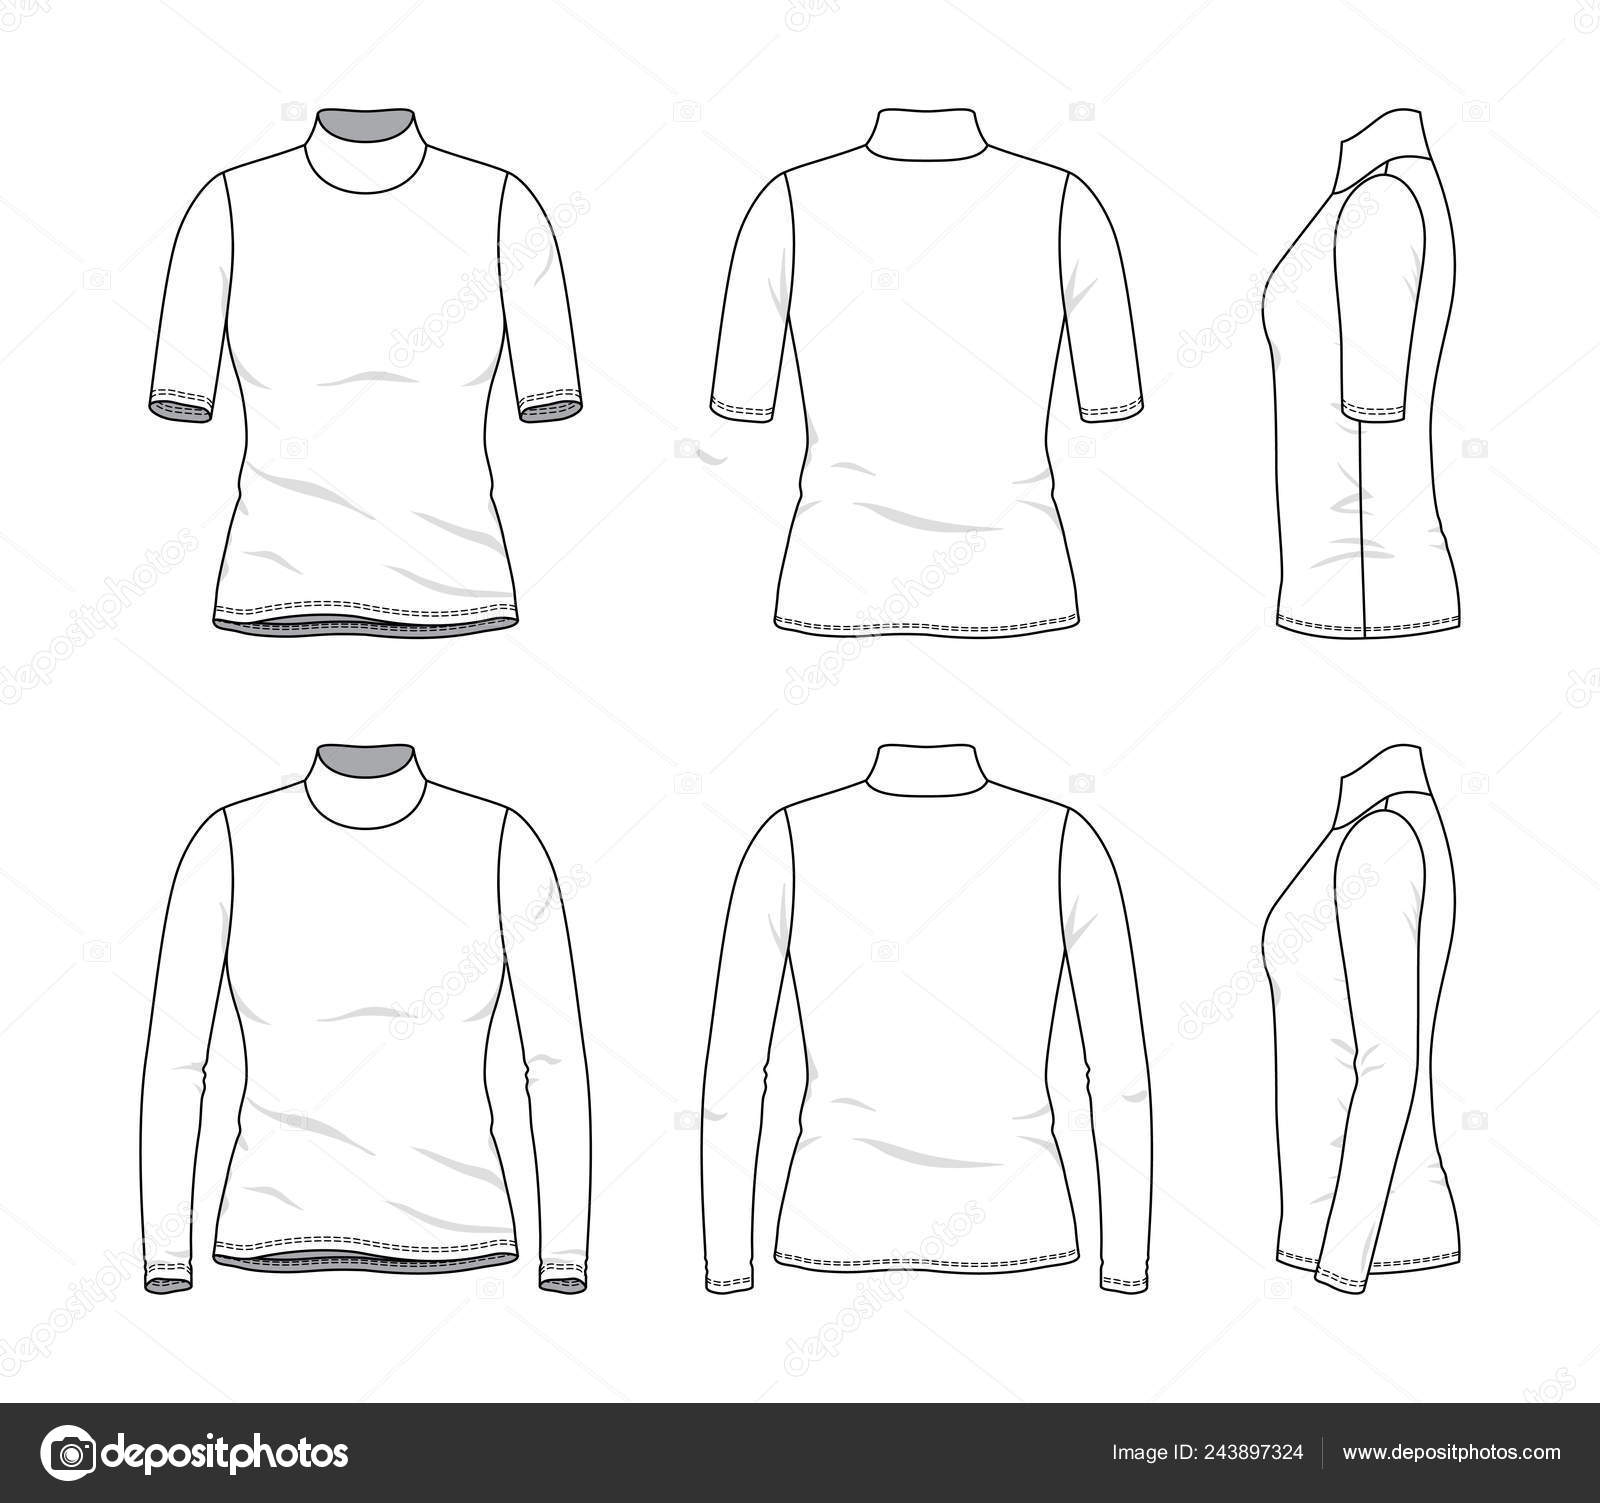 Blank Fashion Design Templates Blank Clothing Templates Stock Vector C Aunaauna2012 243897324